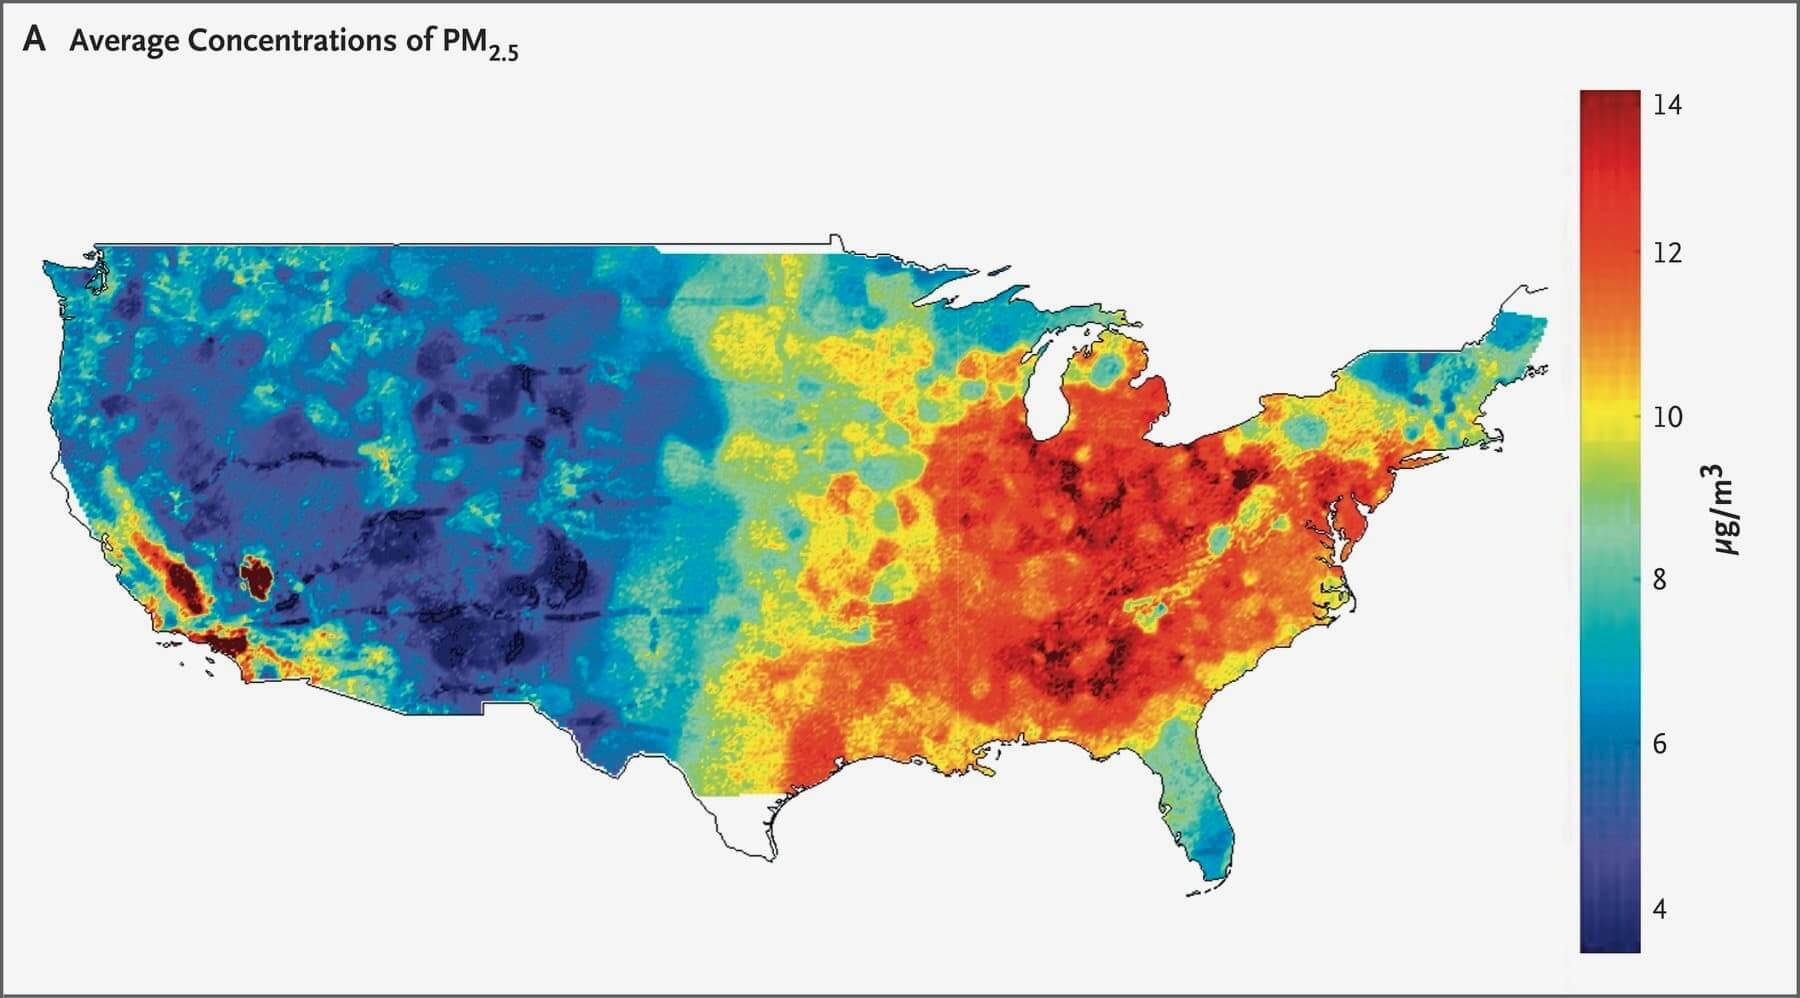 Particulate matter pollution in the United States